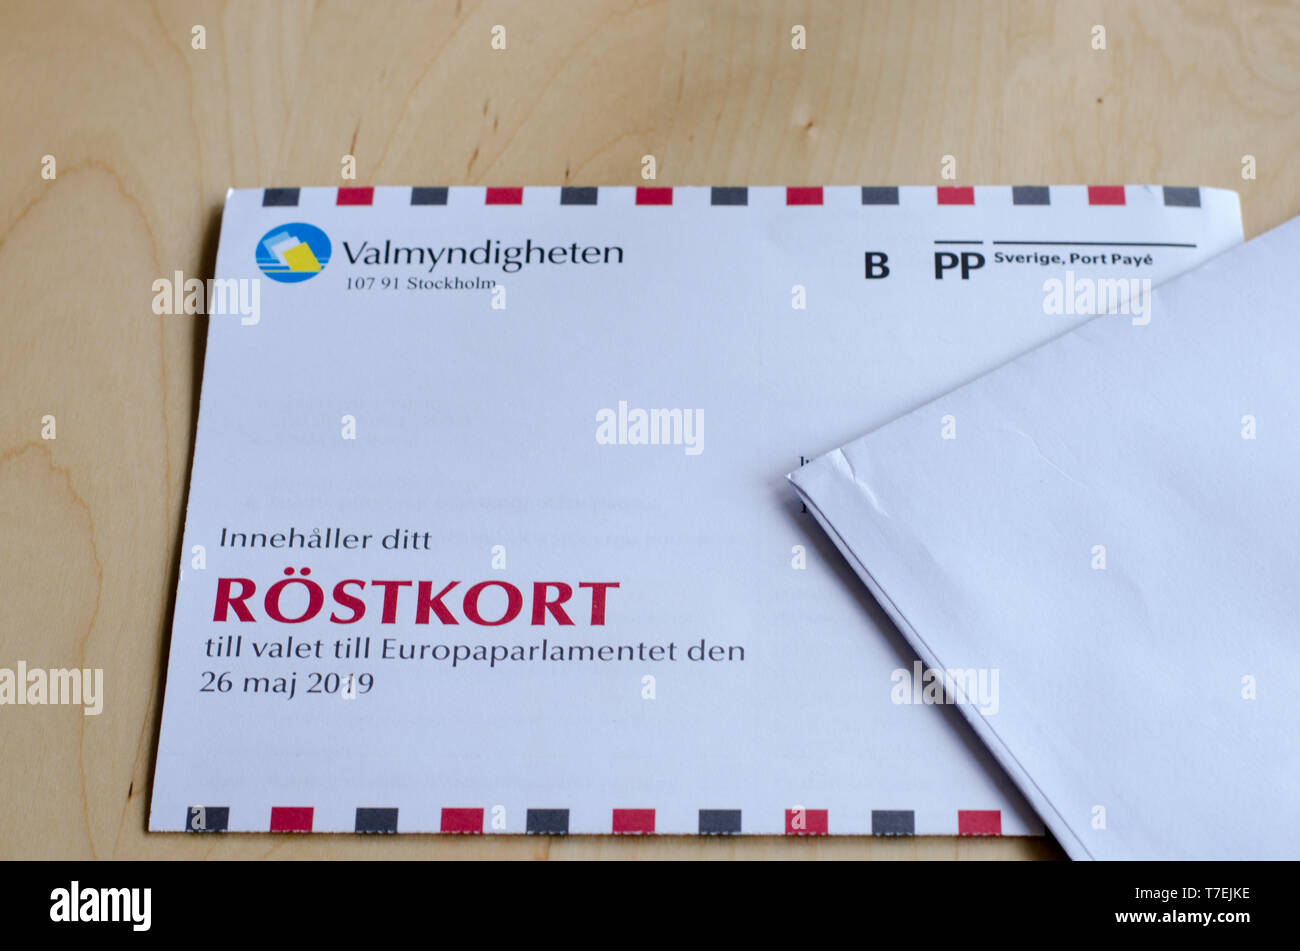 Stockholm, Sweden 6 May 2019. A voting card for the Swedish election to the European Parliament lying on the wooden table. - Stock Image